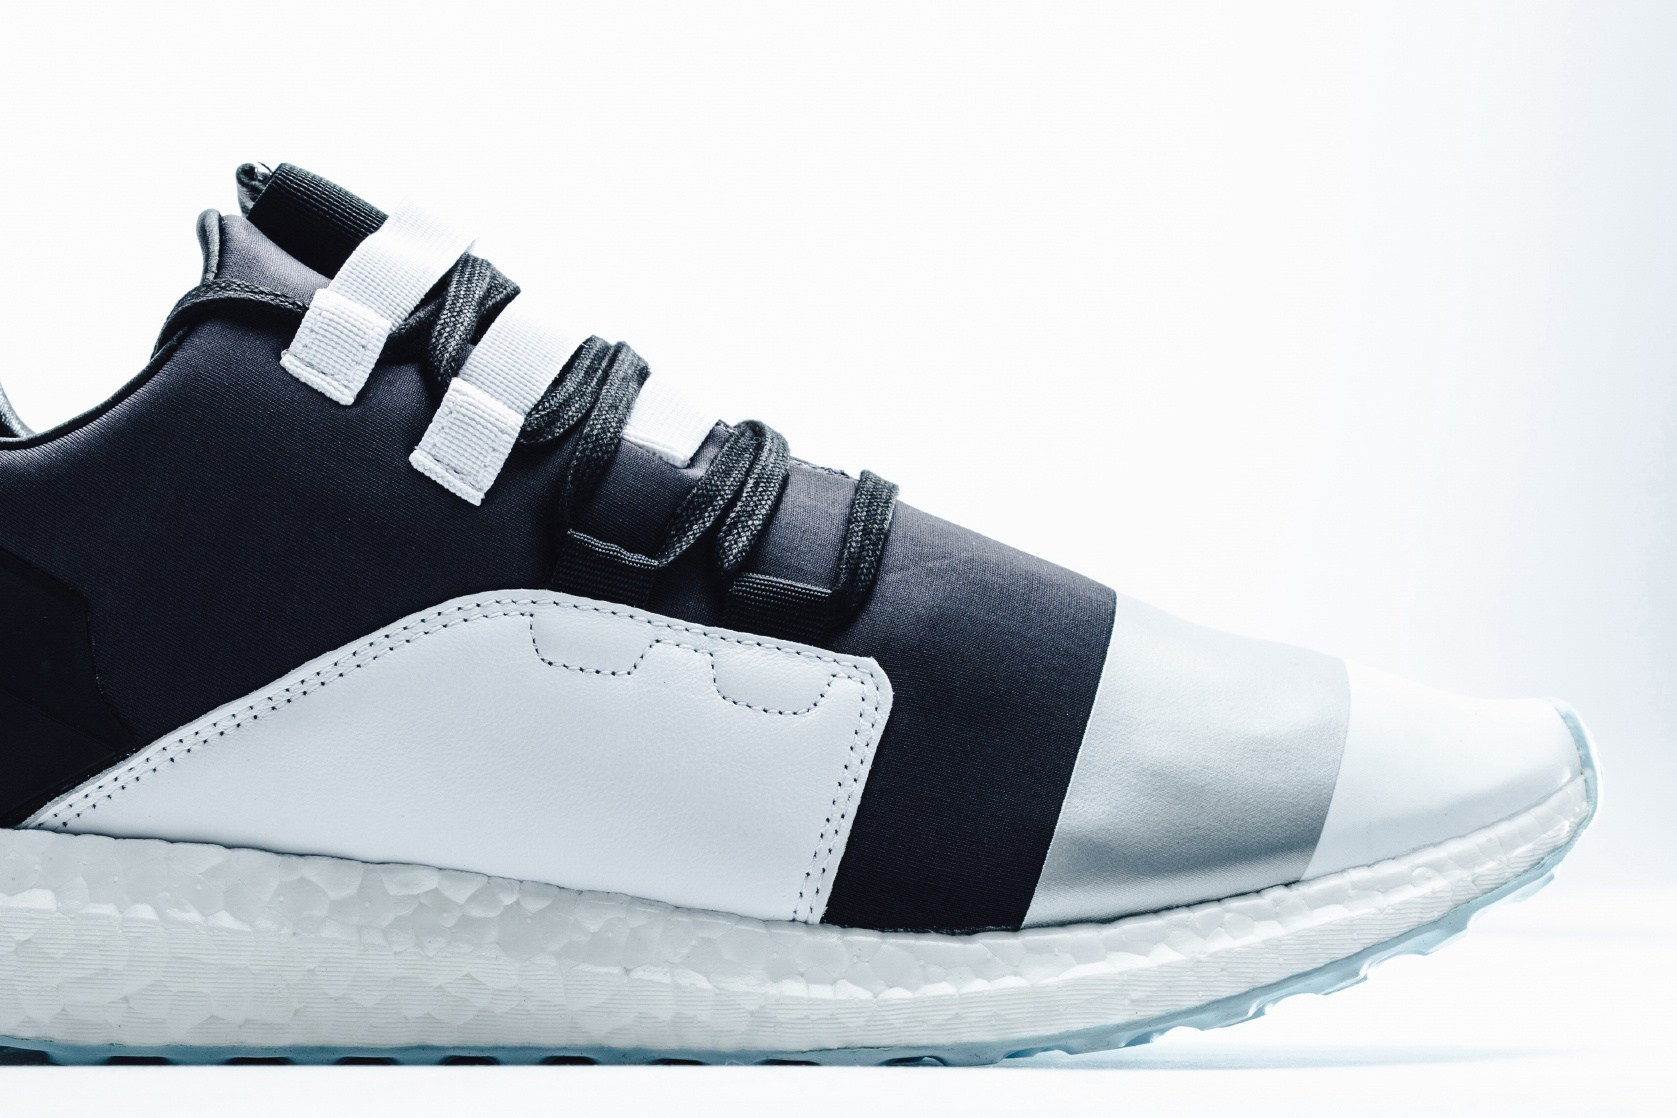 y-3-reflective-silver-kozoko-low-2